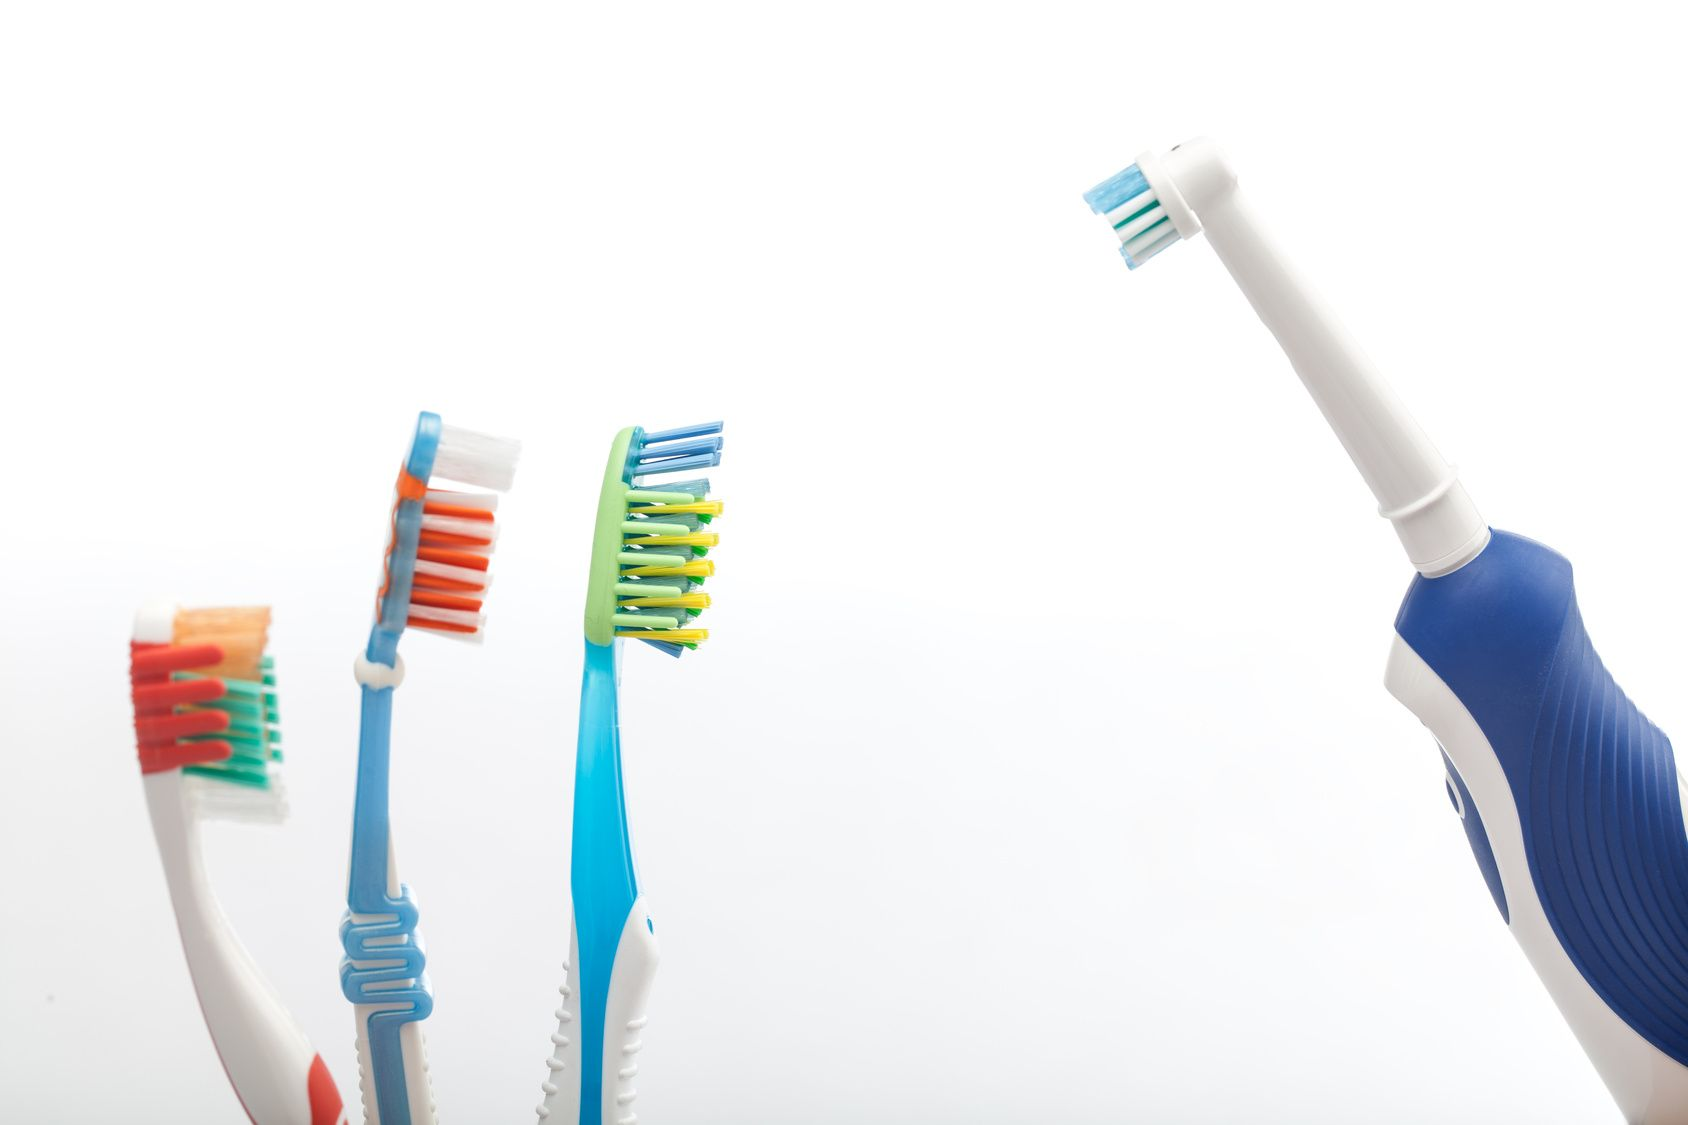 electric toothbrush vs manual toothbrush platinum dental surgery rh pinterest co uk Sonicare Toothbrushes Comparison Sonicare FlexCare Toothbrush